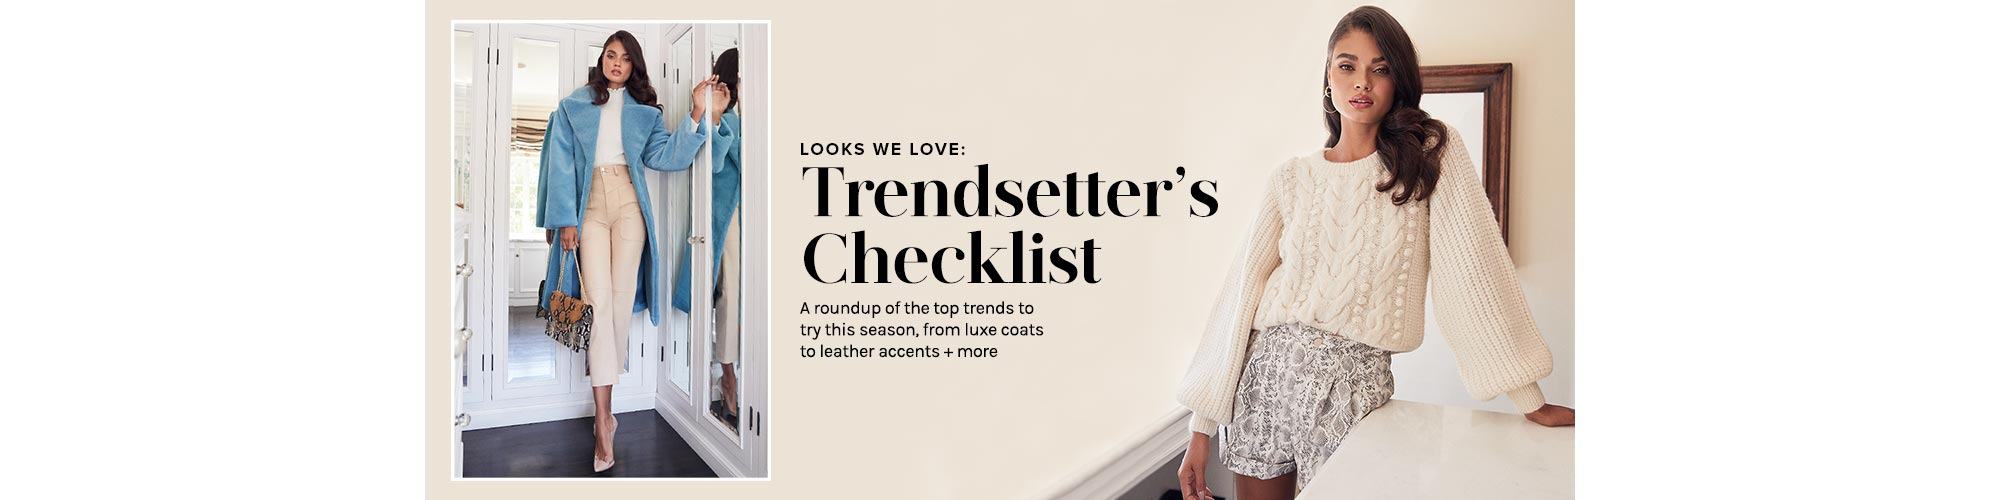 Looks We Love: Trendsetter\'s Checklist. A roundup of the top trends to try this season, from luxe coats to leather accents + more.